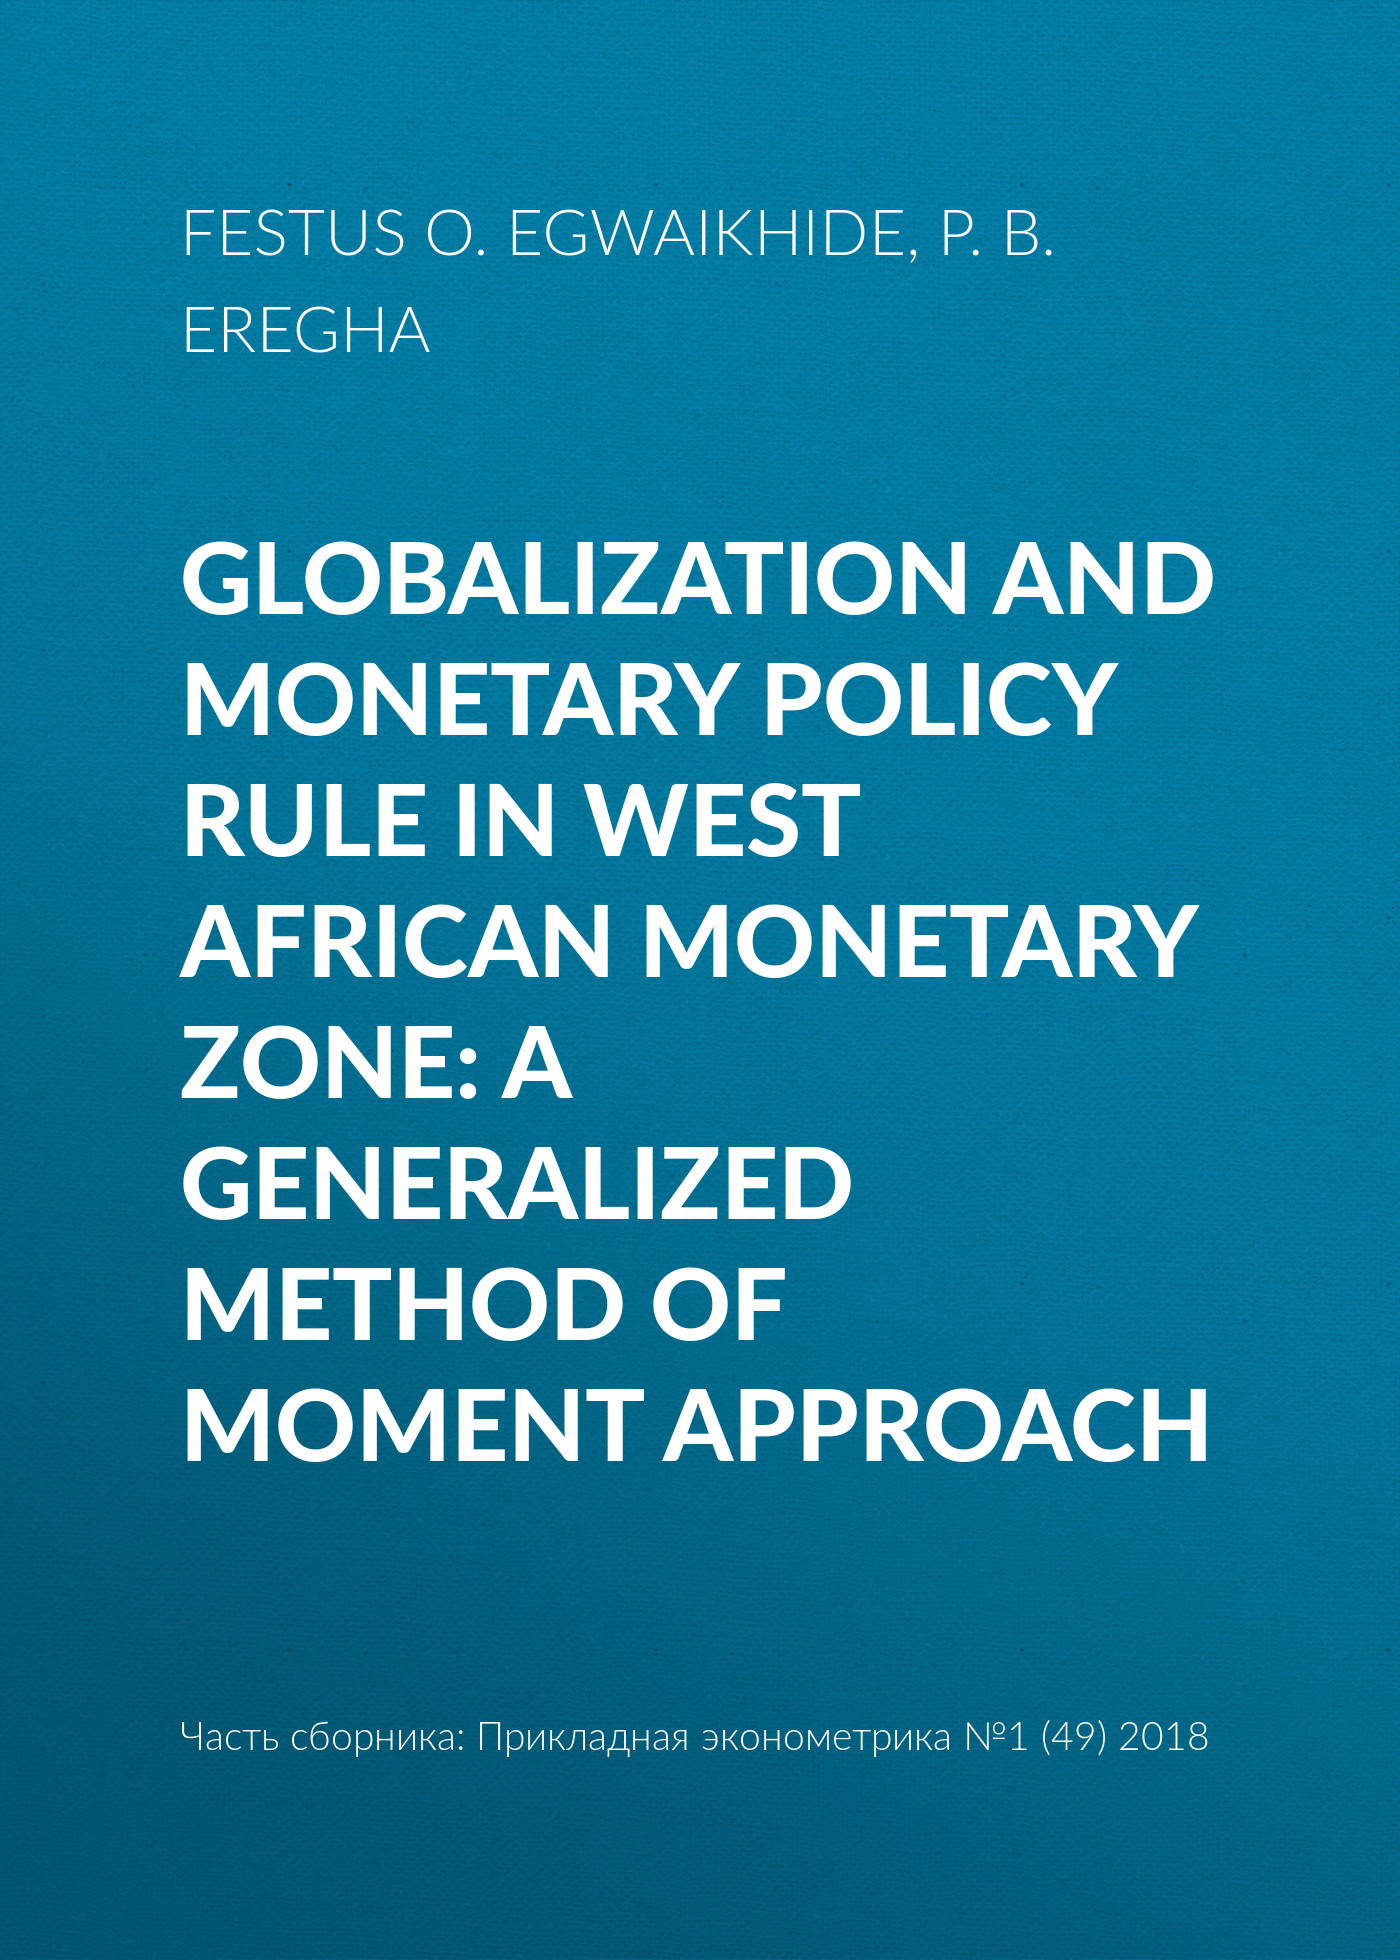 Festus O. Egwaikhide Globalization and monetary policy rule in West African Monetary Zone: A generalized method of moment approach цепочка латунная